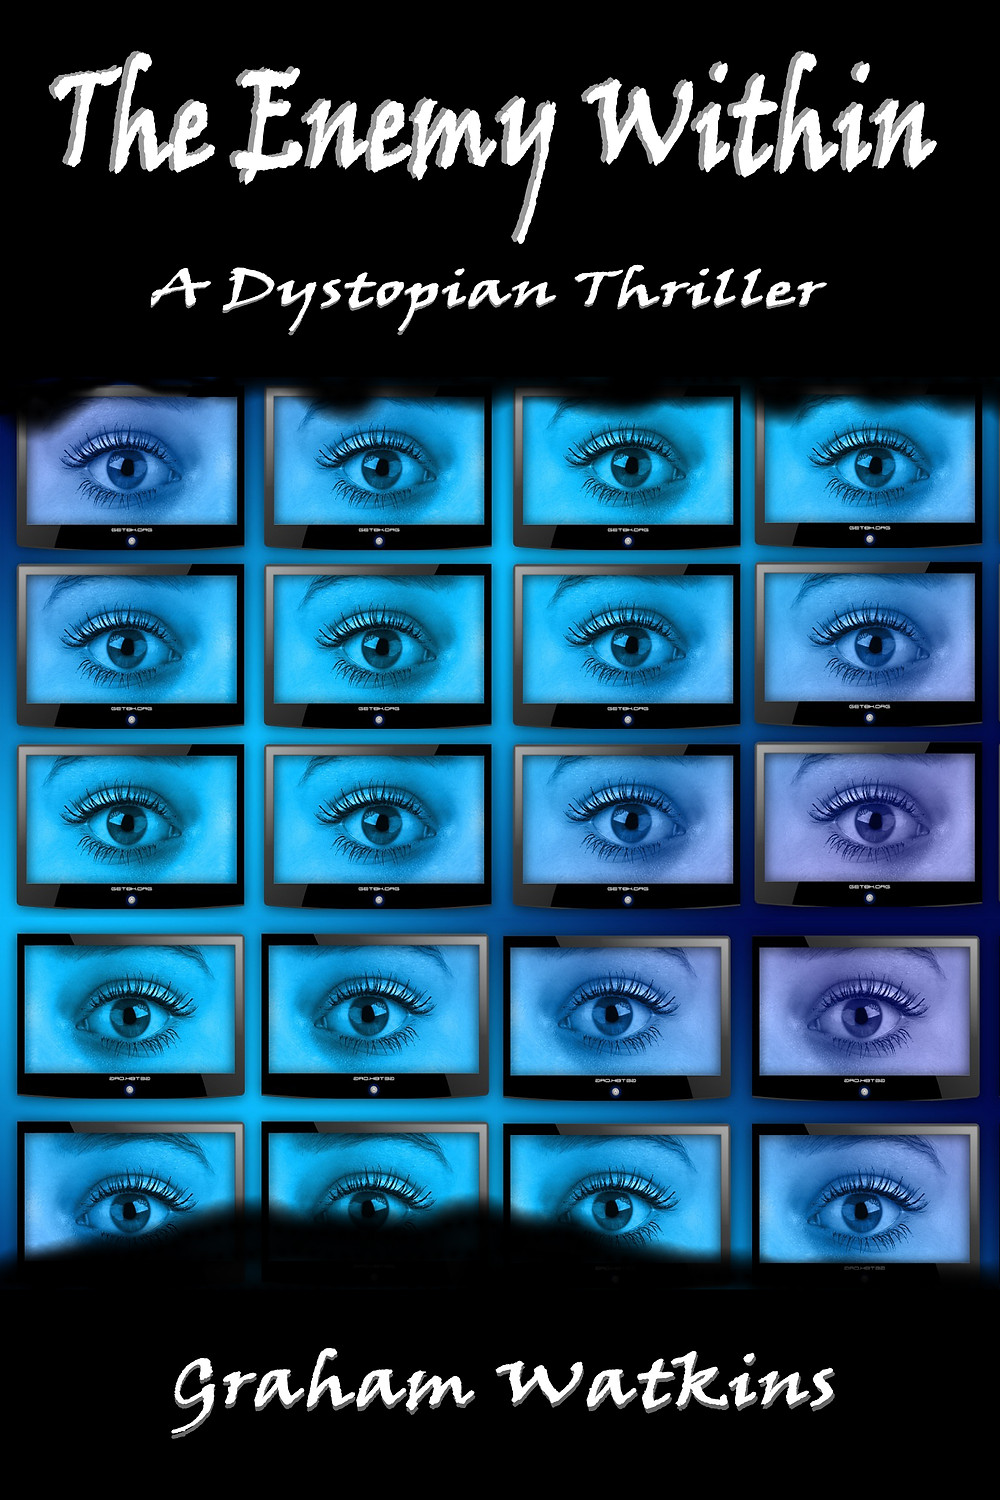 The Enemy Within - A Dystopian Thriller.